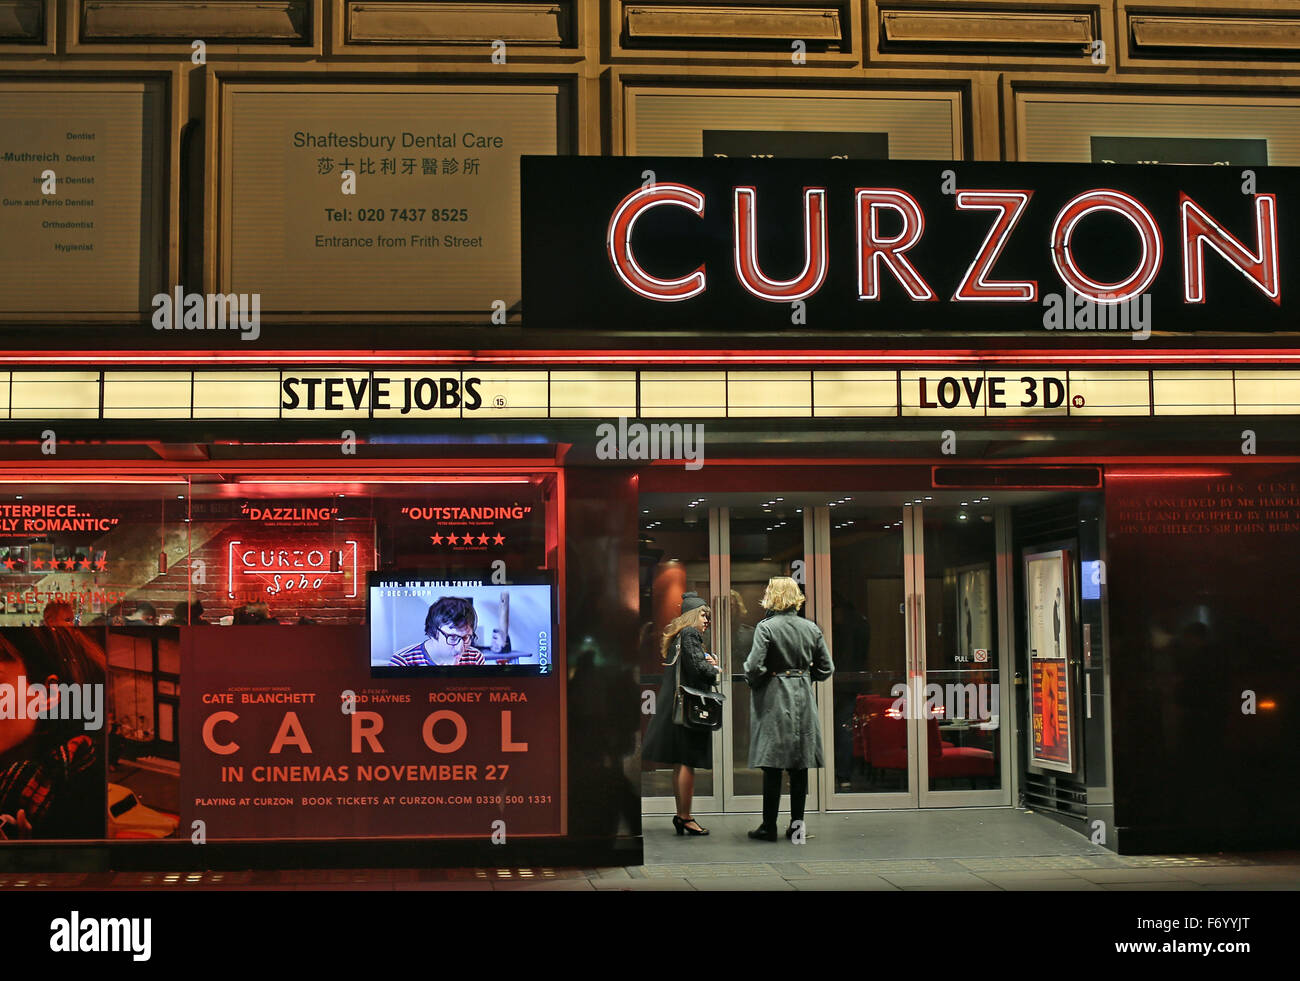 Curzon Soho cinema, Shaftesbury Avenue, London - Stock Image